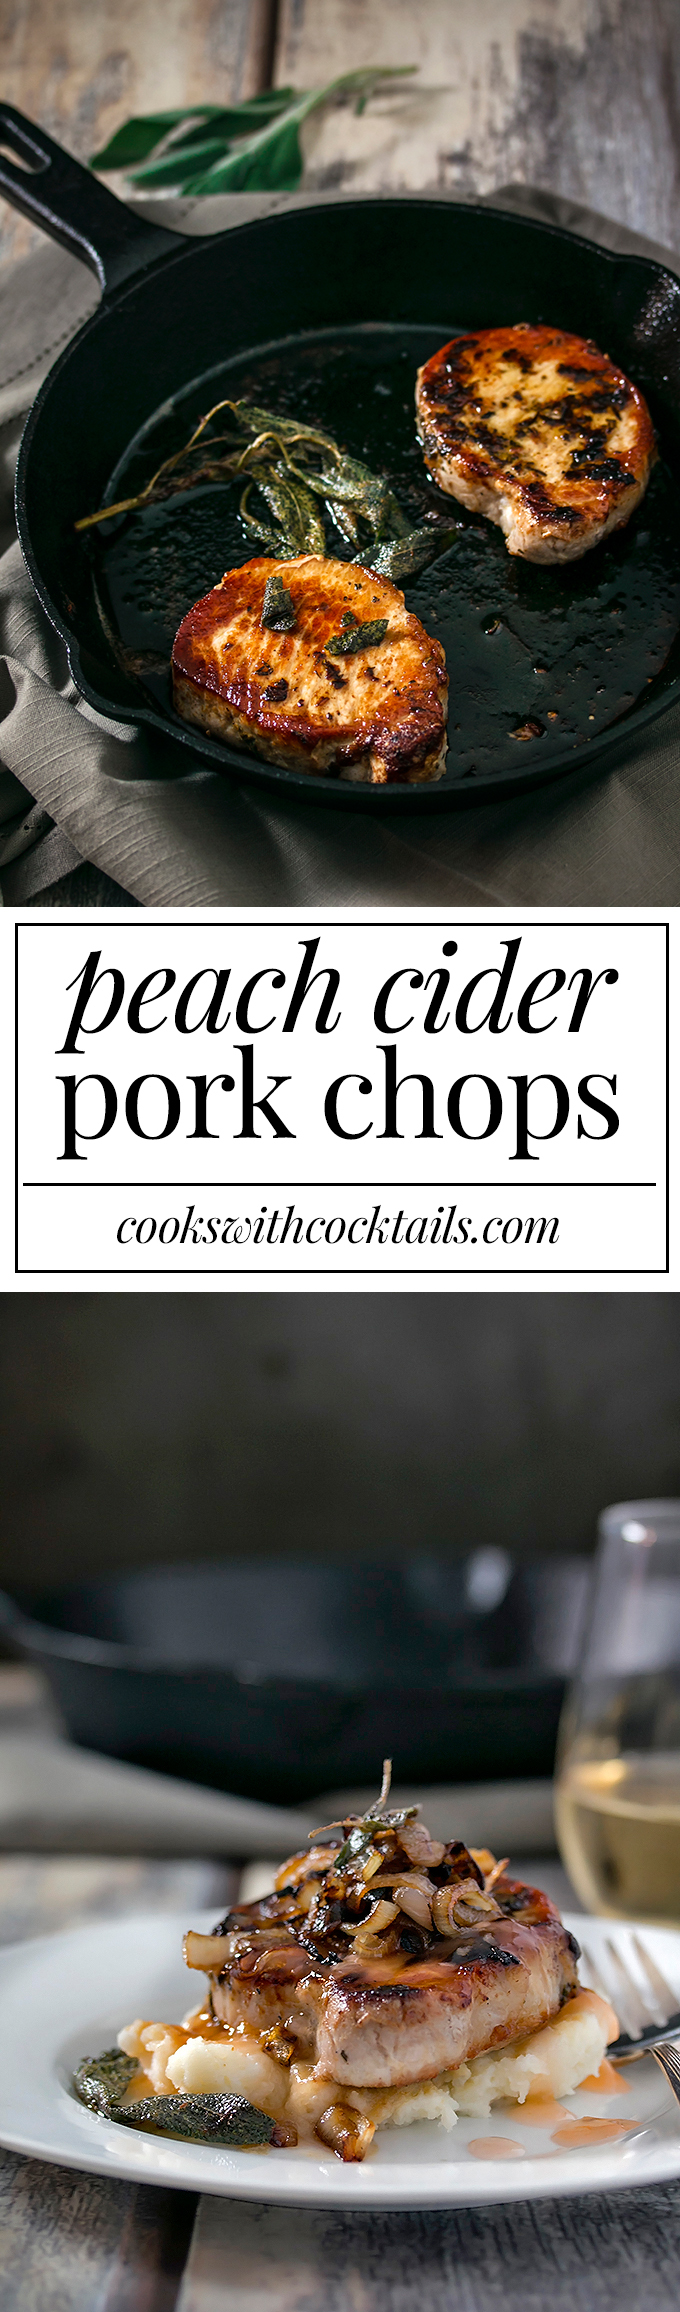 Peach cider, in a sauce form, drizzled all over marinated rosemary pork chops and topped with caramelized onions.